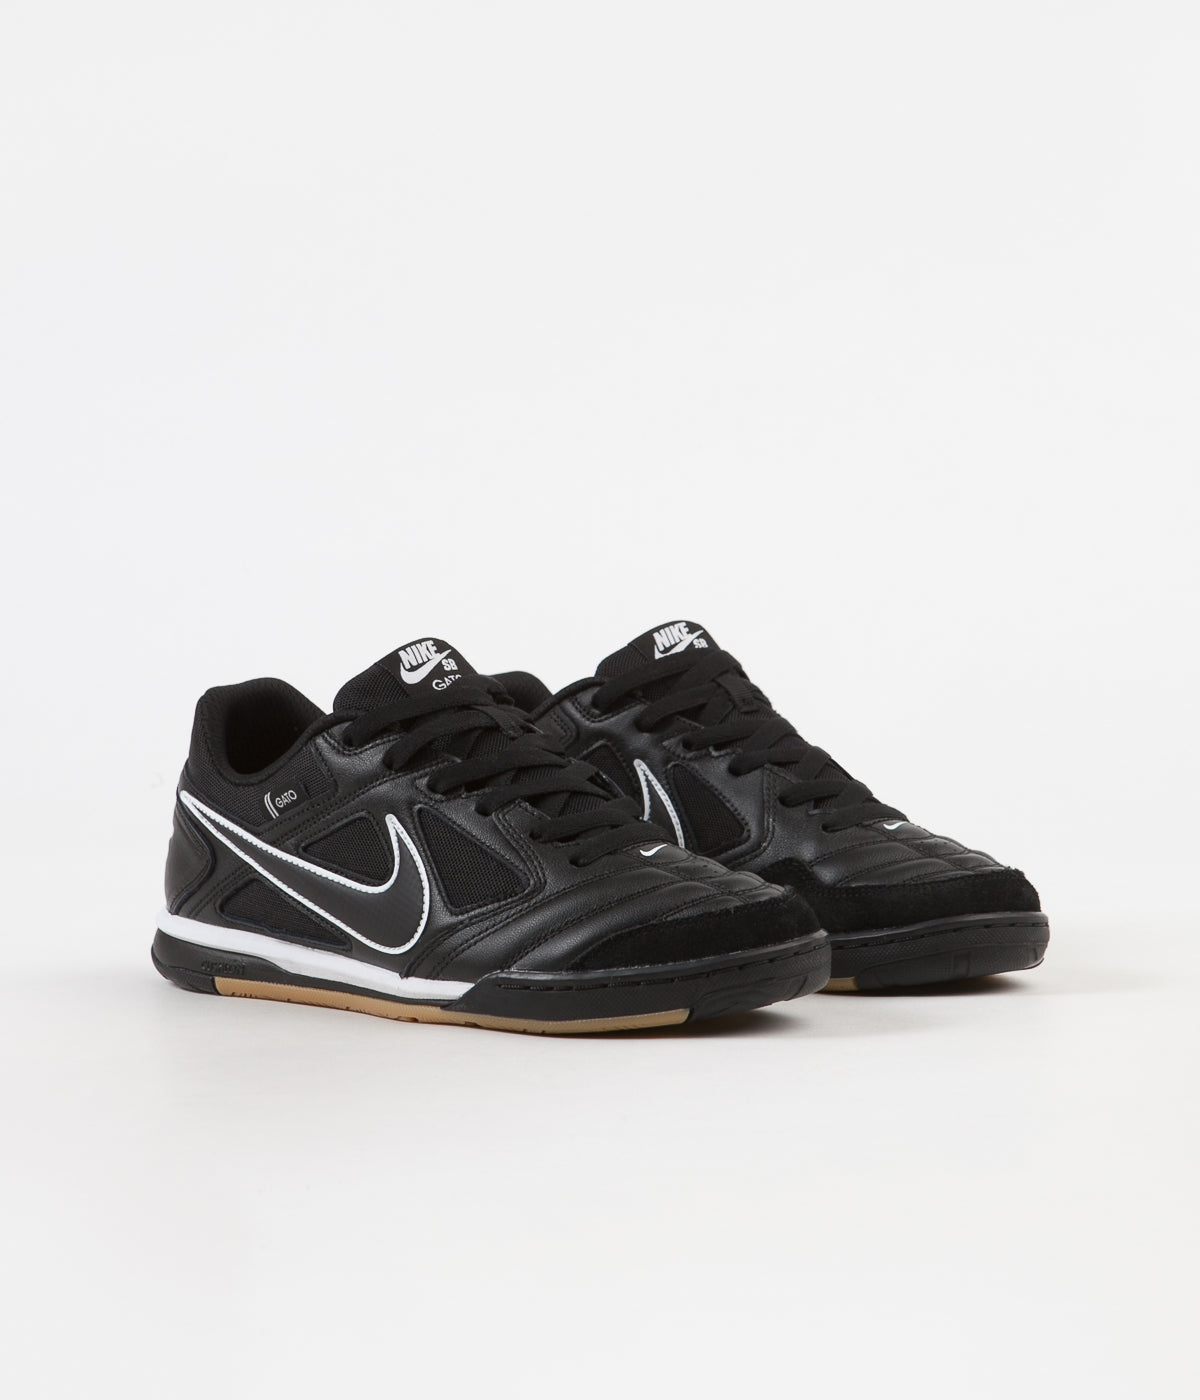 new product a3b87 84bcd ... netherlands nike sb gato shoes black black white gum light brown 8358d  82aee